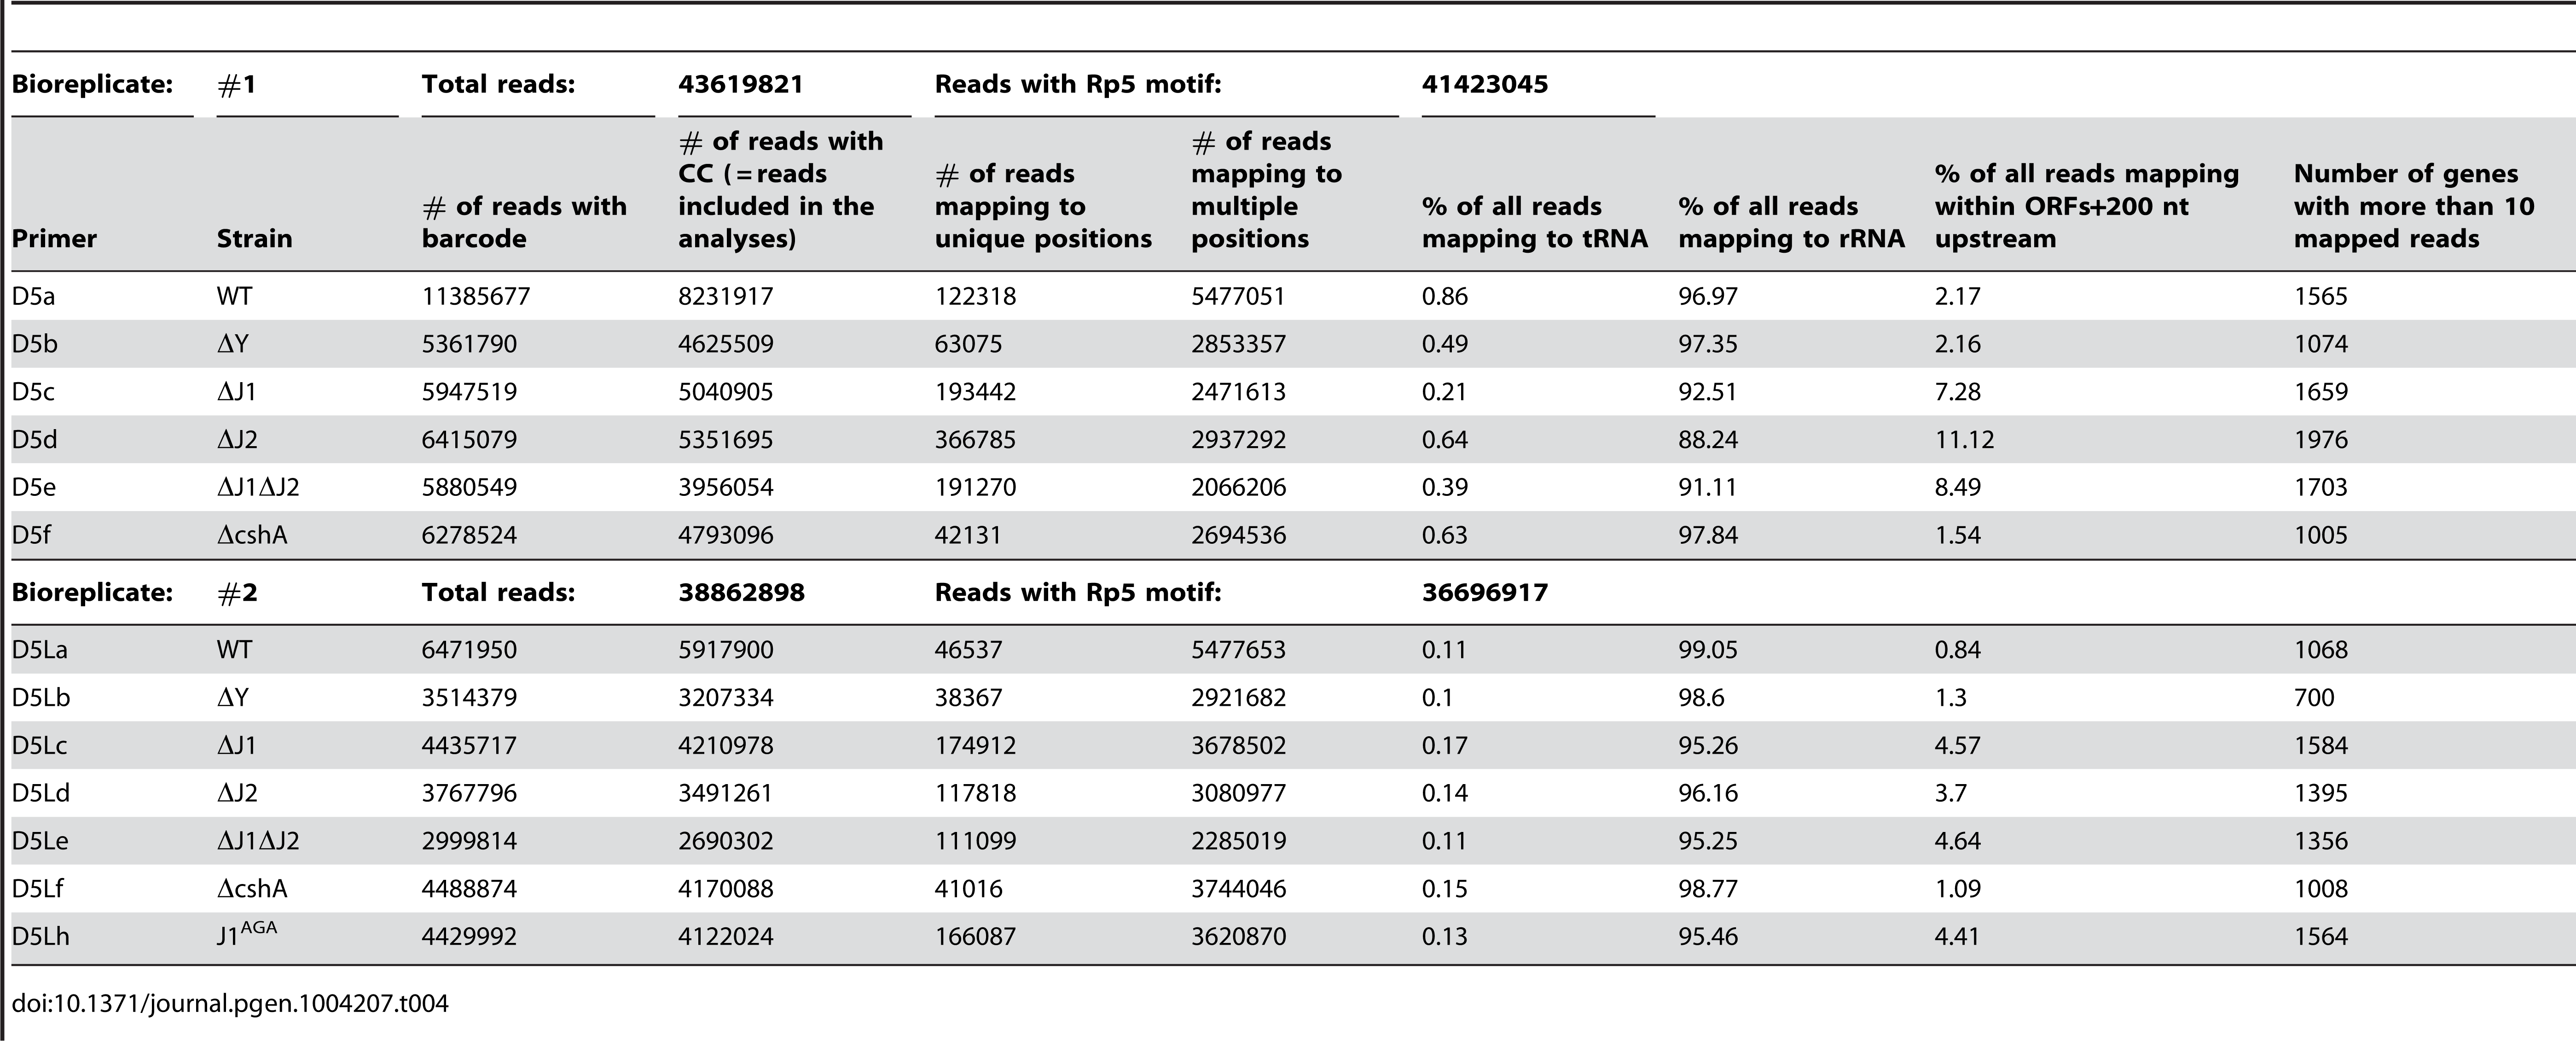 Overview of the EMOTE data.